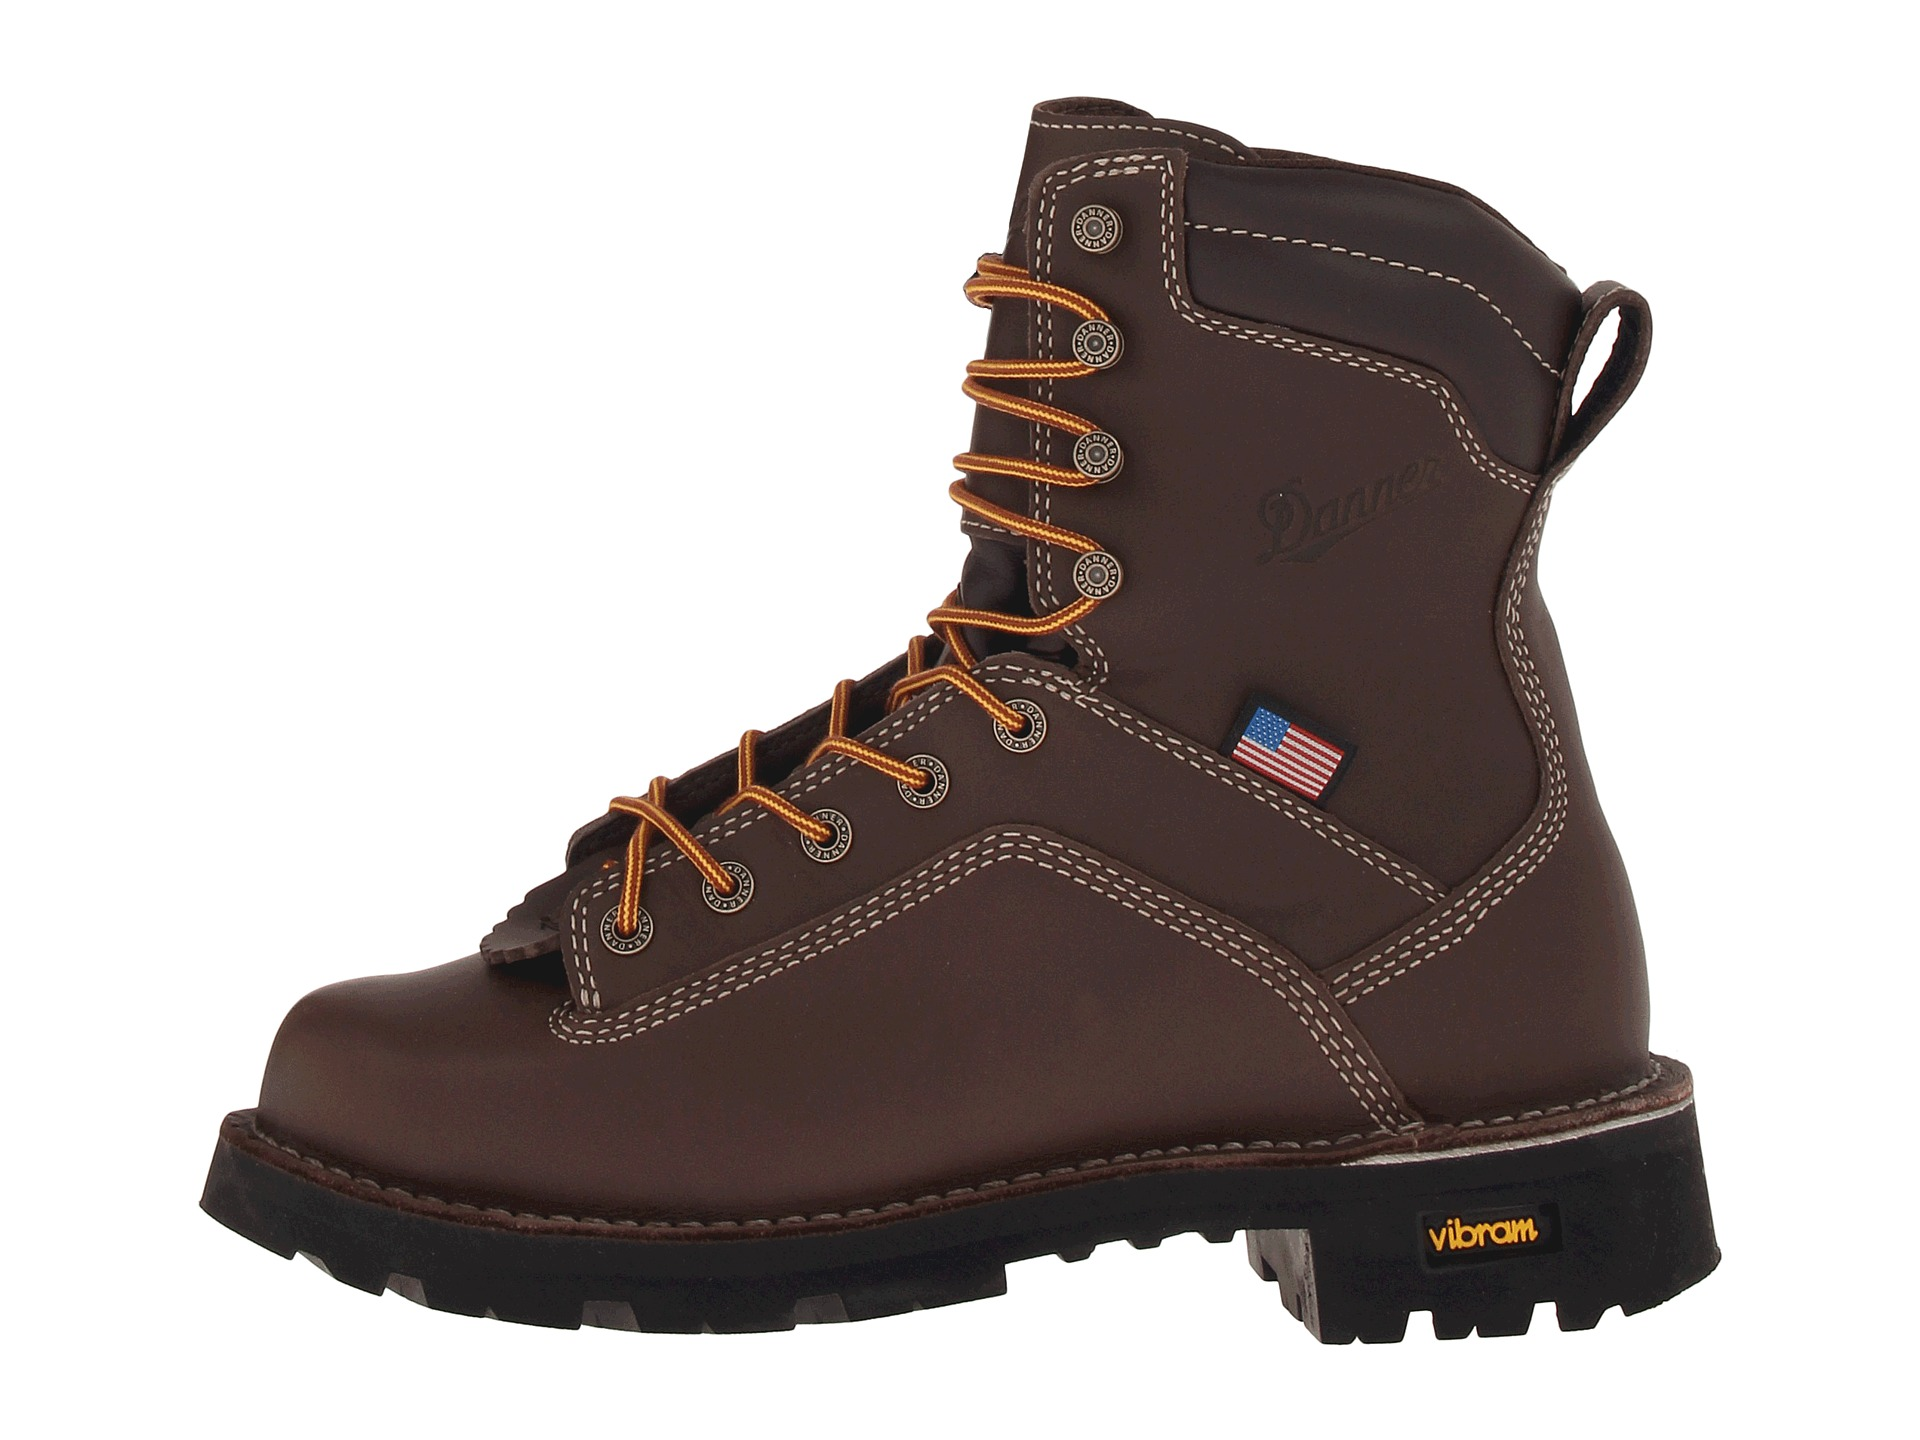 Danner Quarry Boots DF3hsYo4